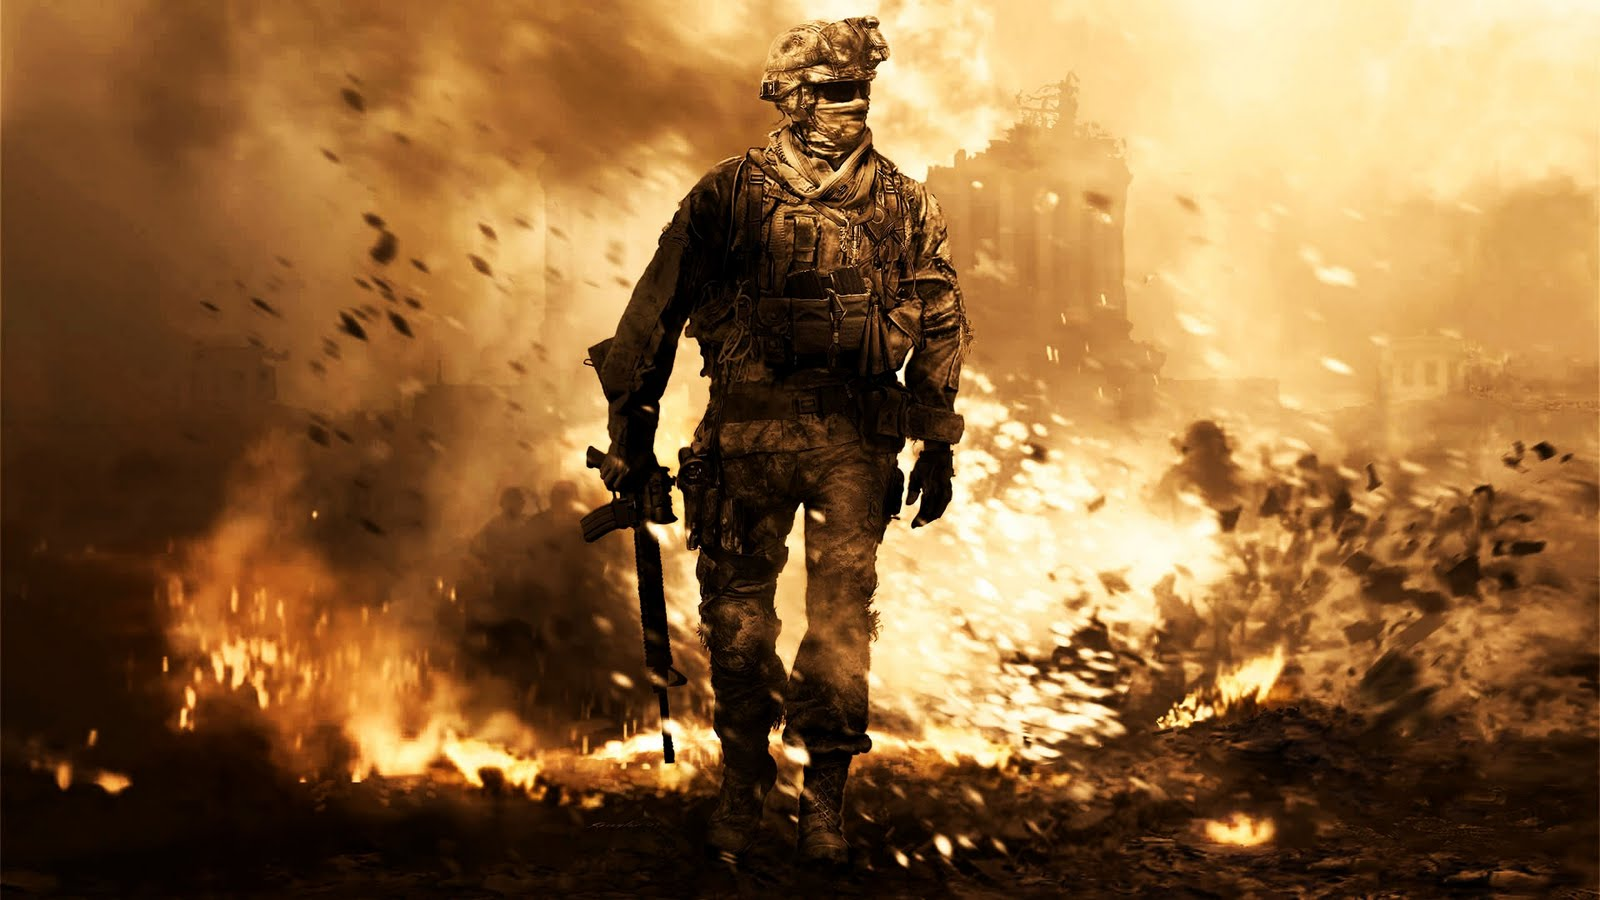 http://4.bp.blogspot.com/-RHEMCmhmJHQ/TjW3rKNg2dI/AAAAAAAAAJs/8HFcAt8f2lg/s1600/Call-Of-Duty-Modern-Warfare-2-Burning-Widescreen-Wallpaper.jpg